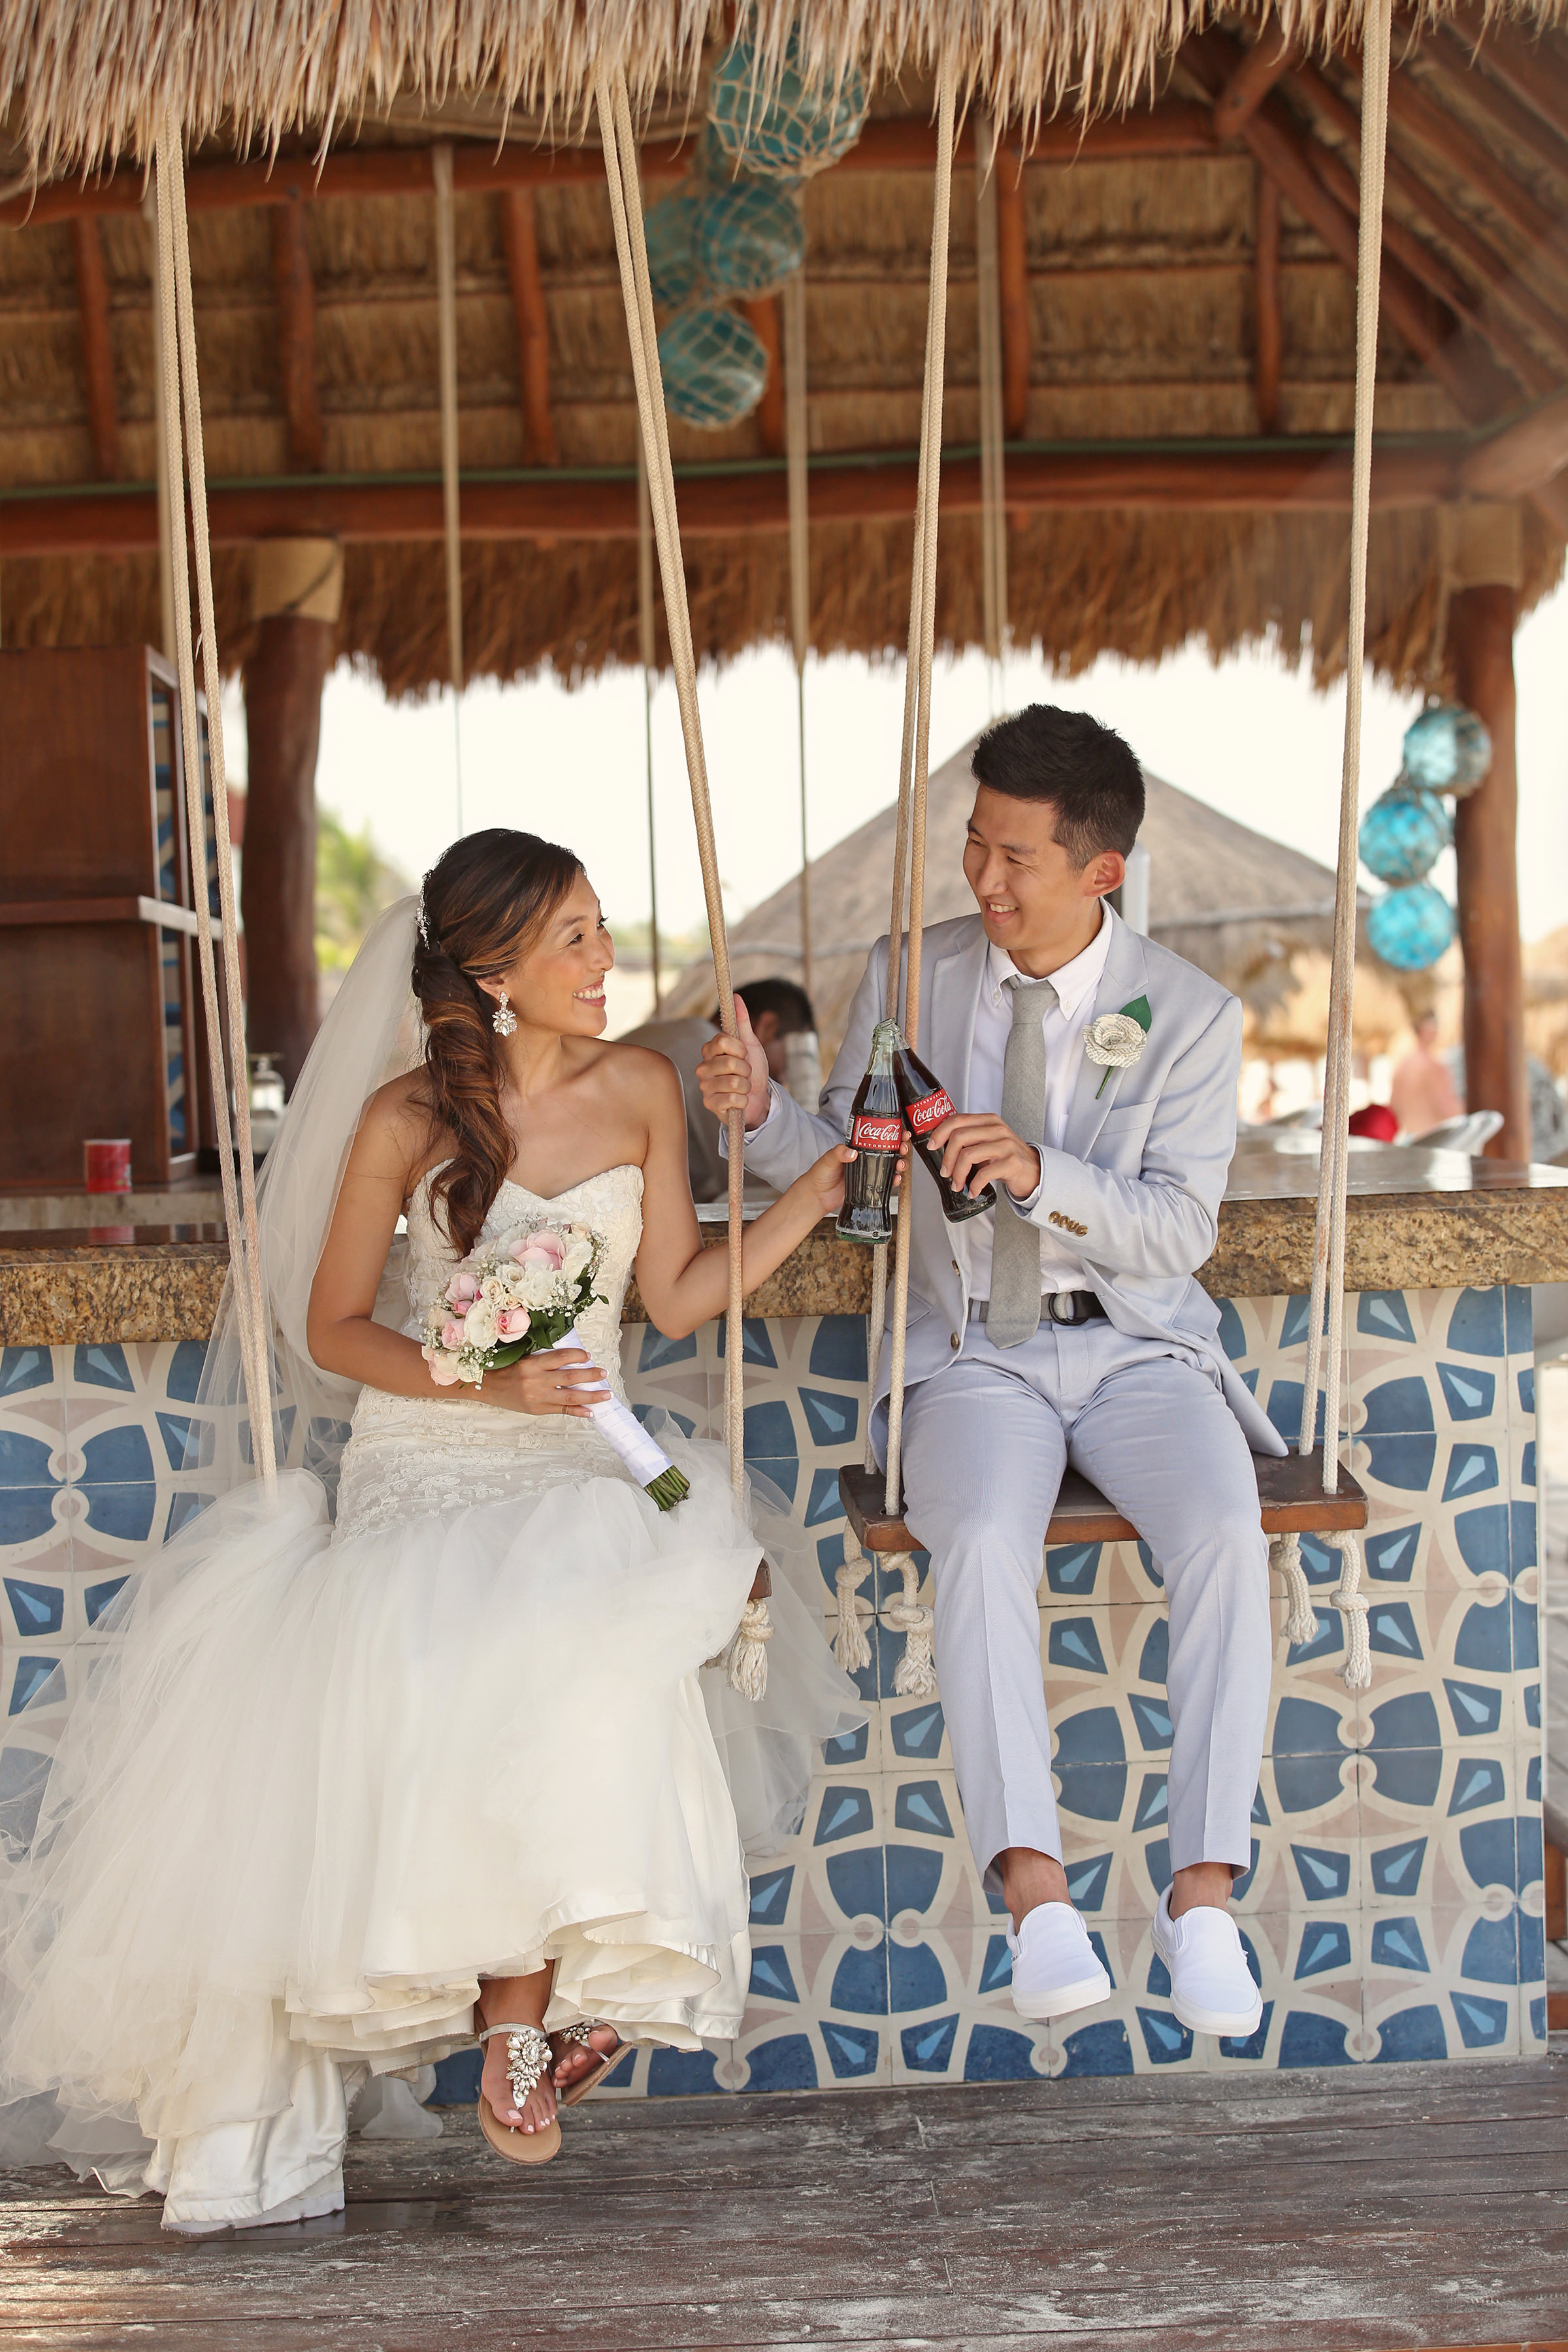 Bride and groom toast with cokes - photo by Kenny Kim Photography